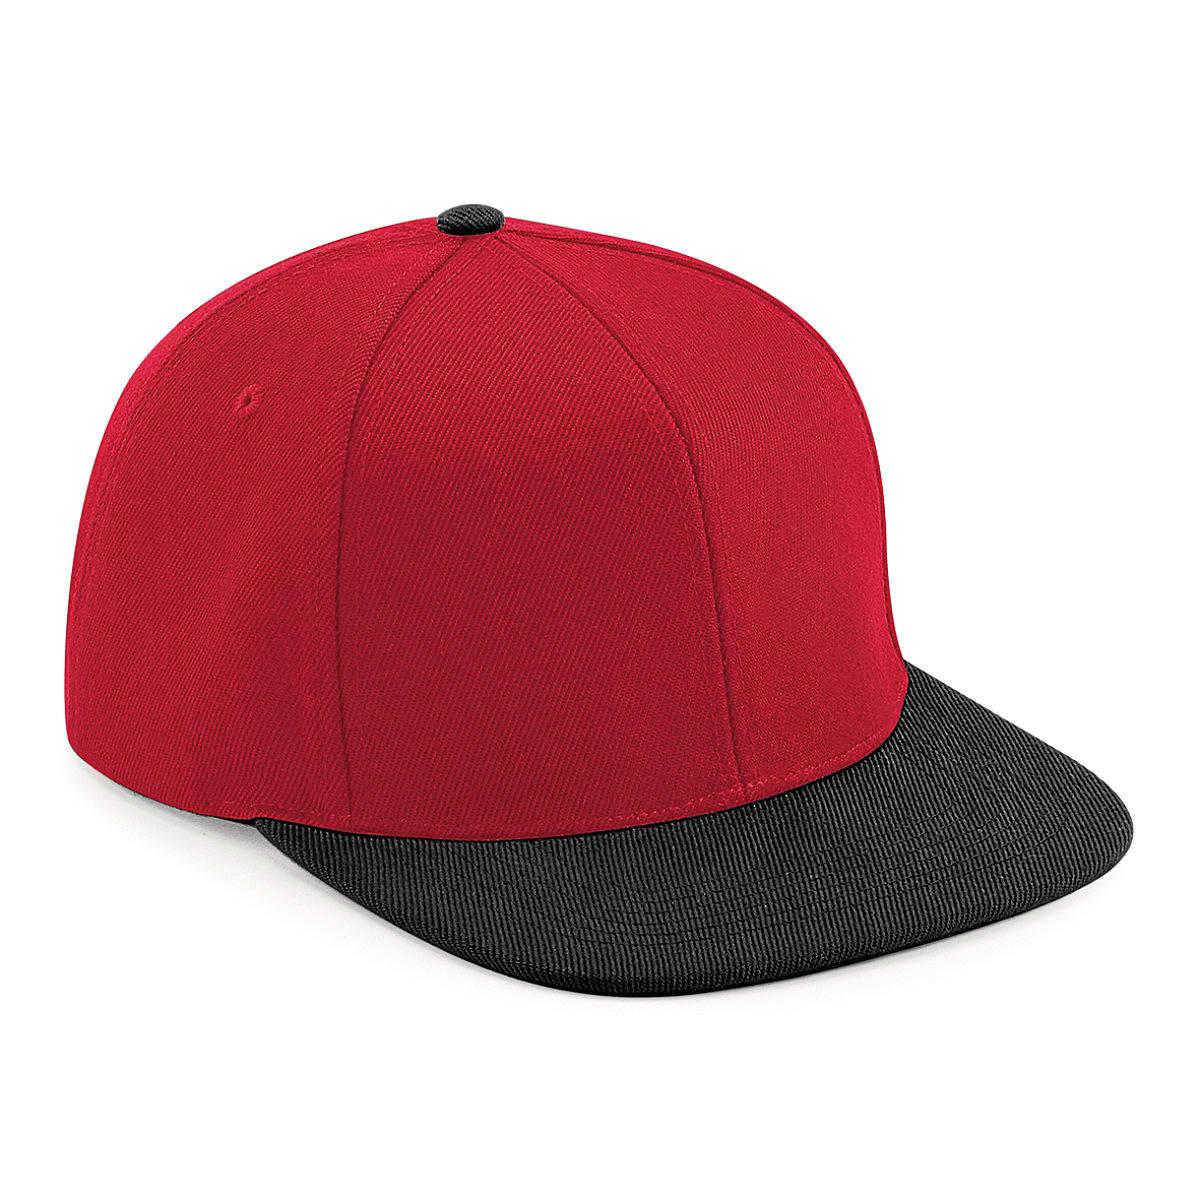 Original Flat Peak 6 Panel Snapback Cap in Classic Red / Black (Product Code: B661)